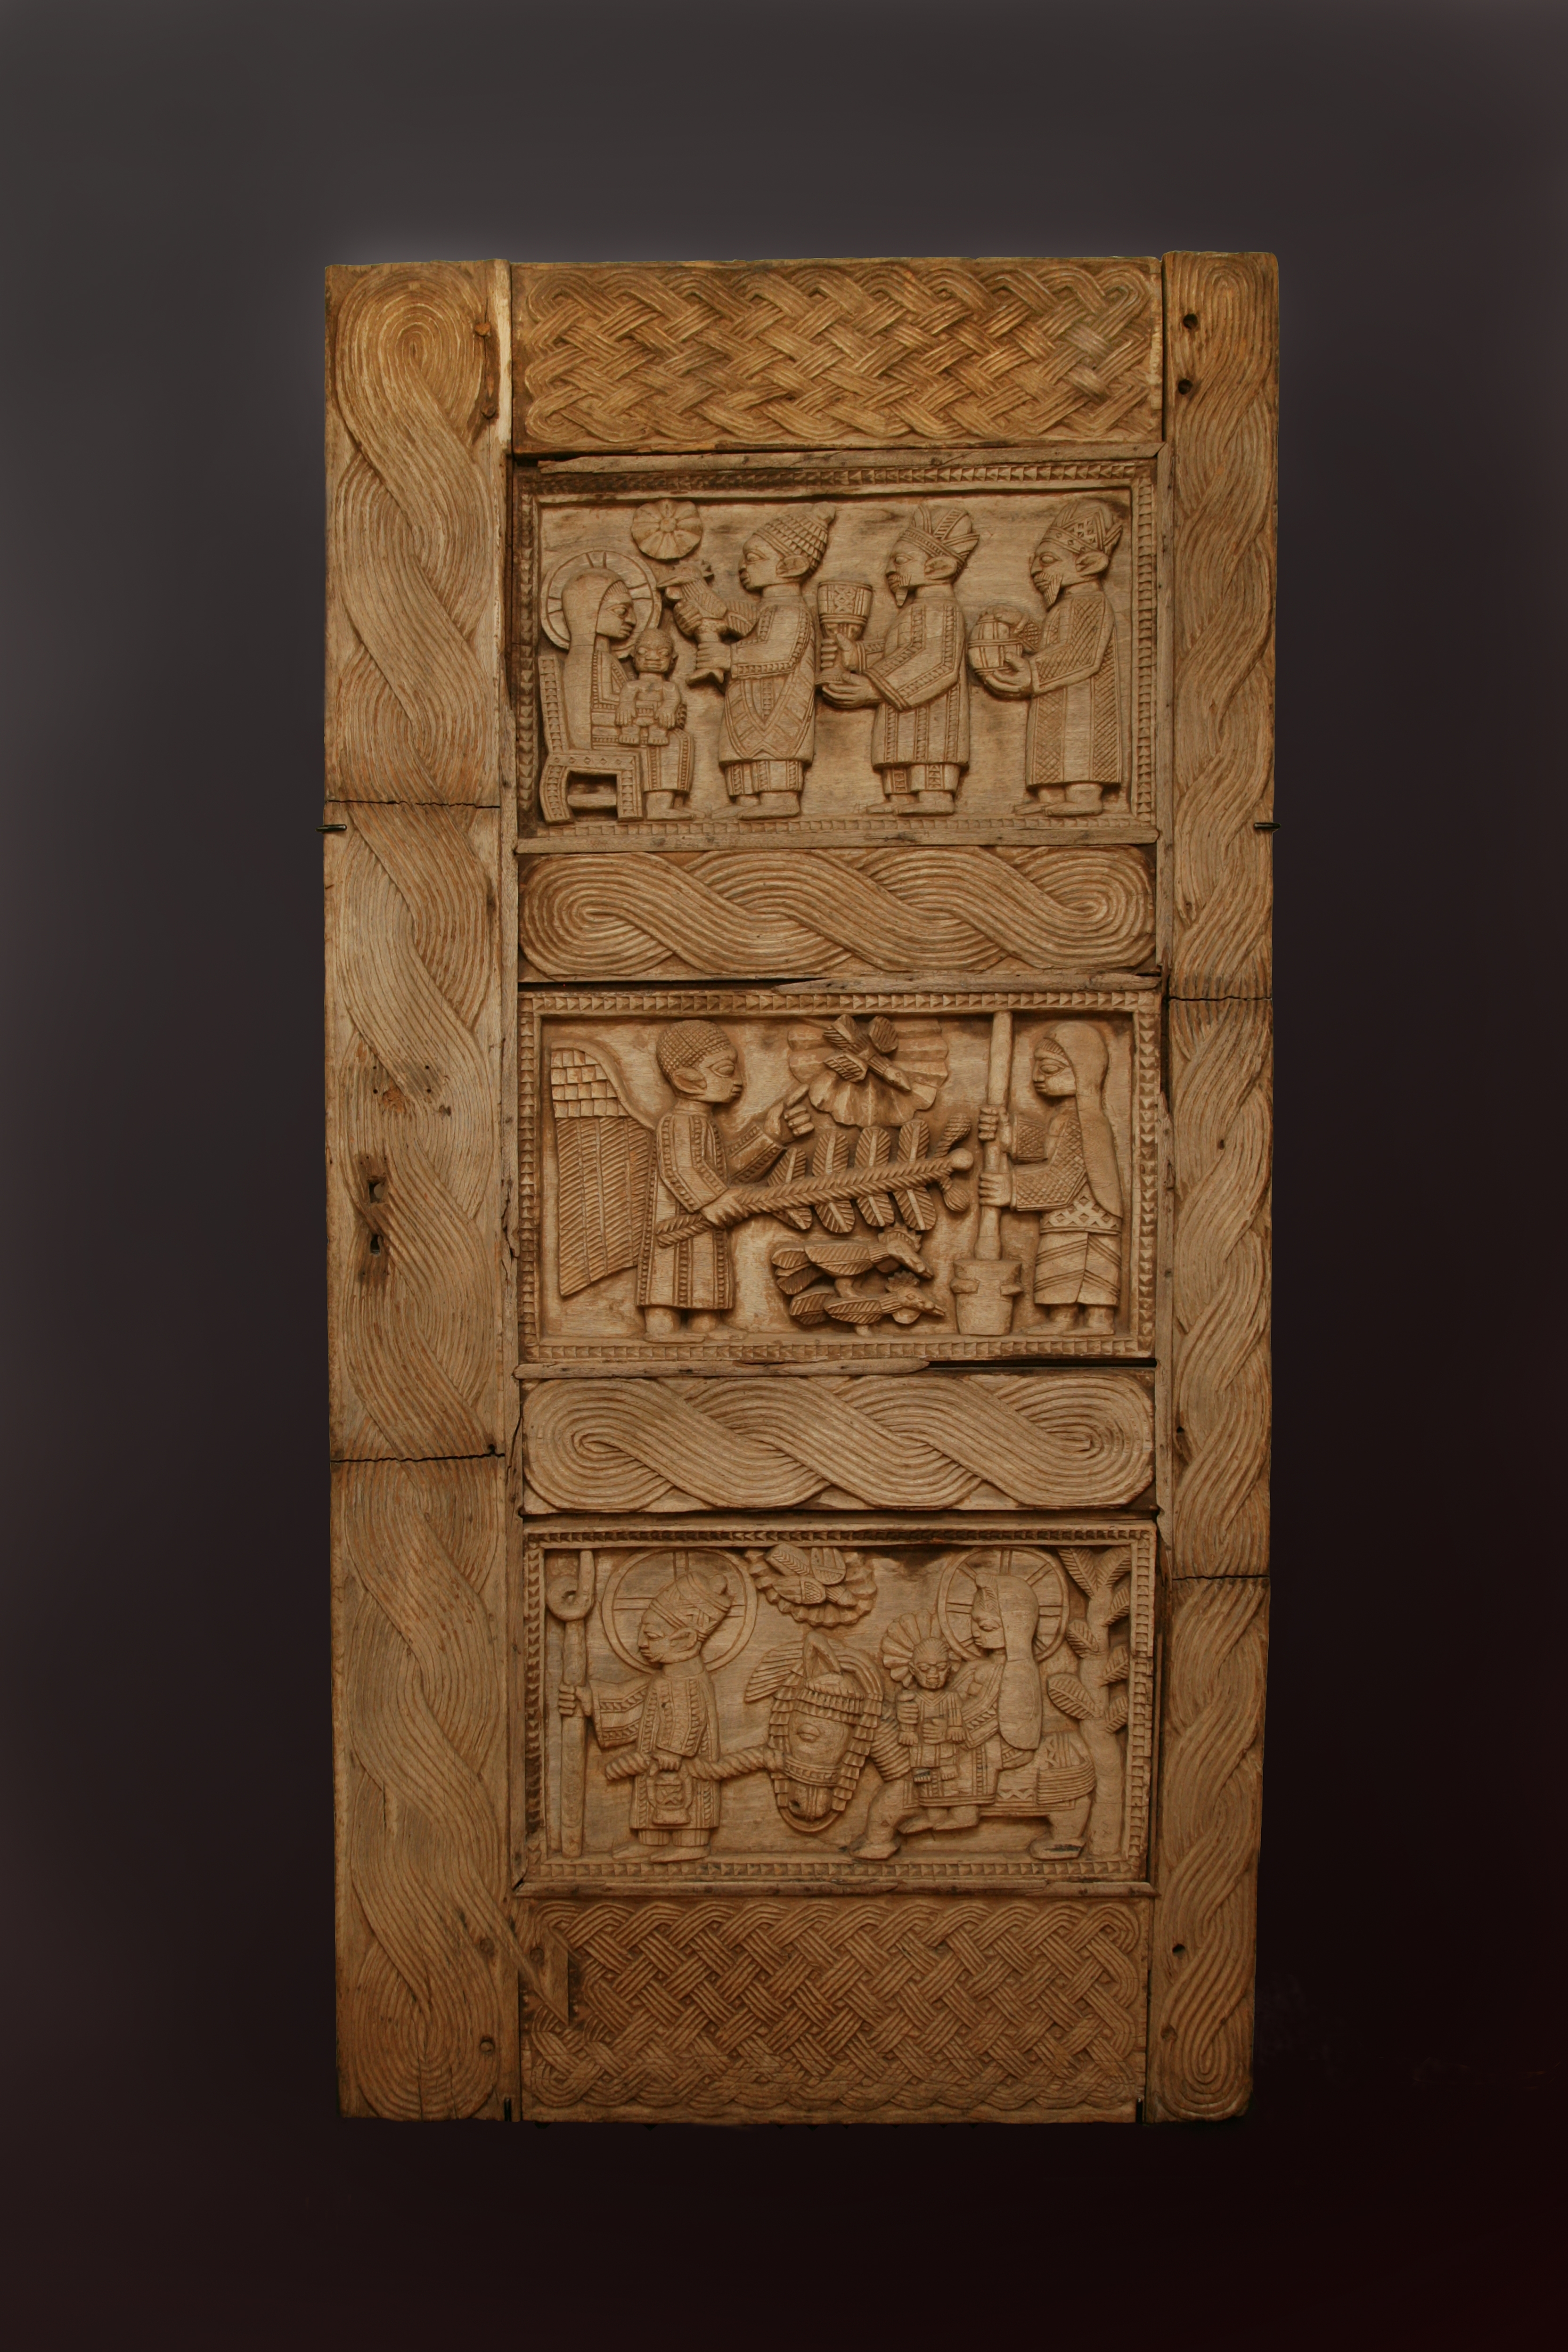 Diy wood carving designs for doors plans free - Door wood carving designs ...